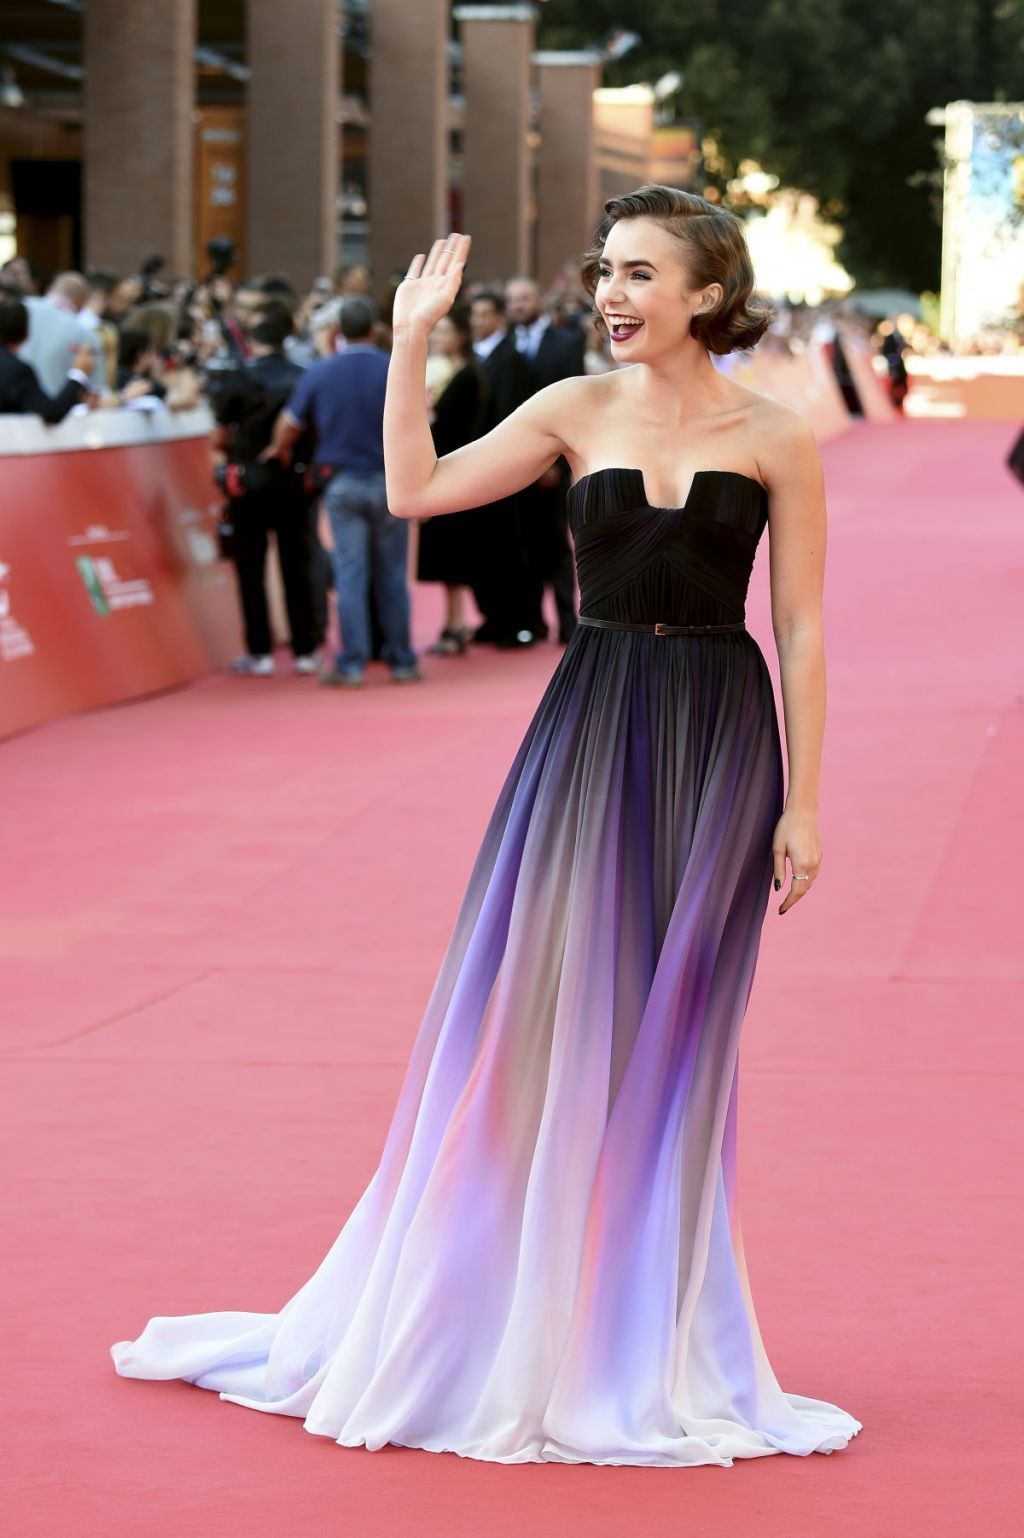 lily-collins-at-love-rosie-premiere-at-rome-film-festival_11